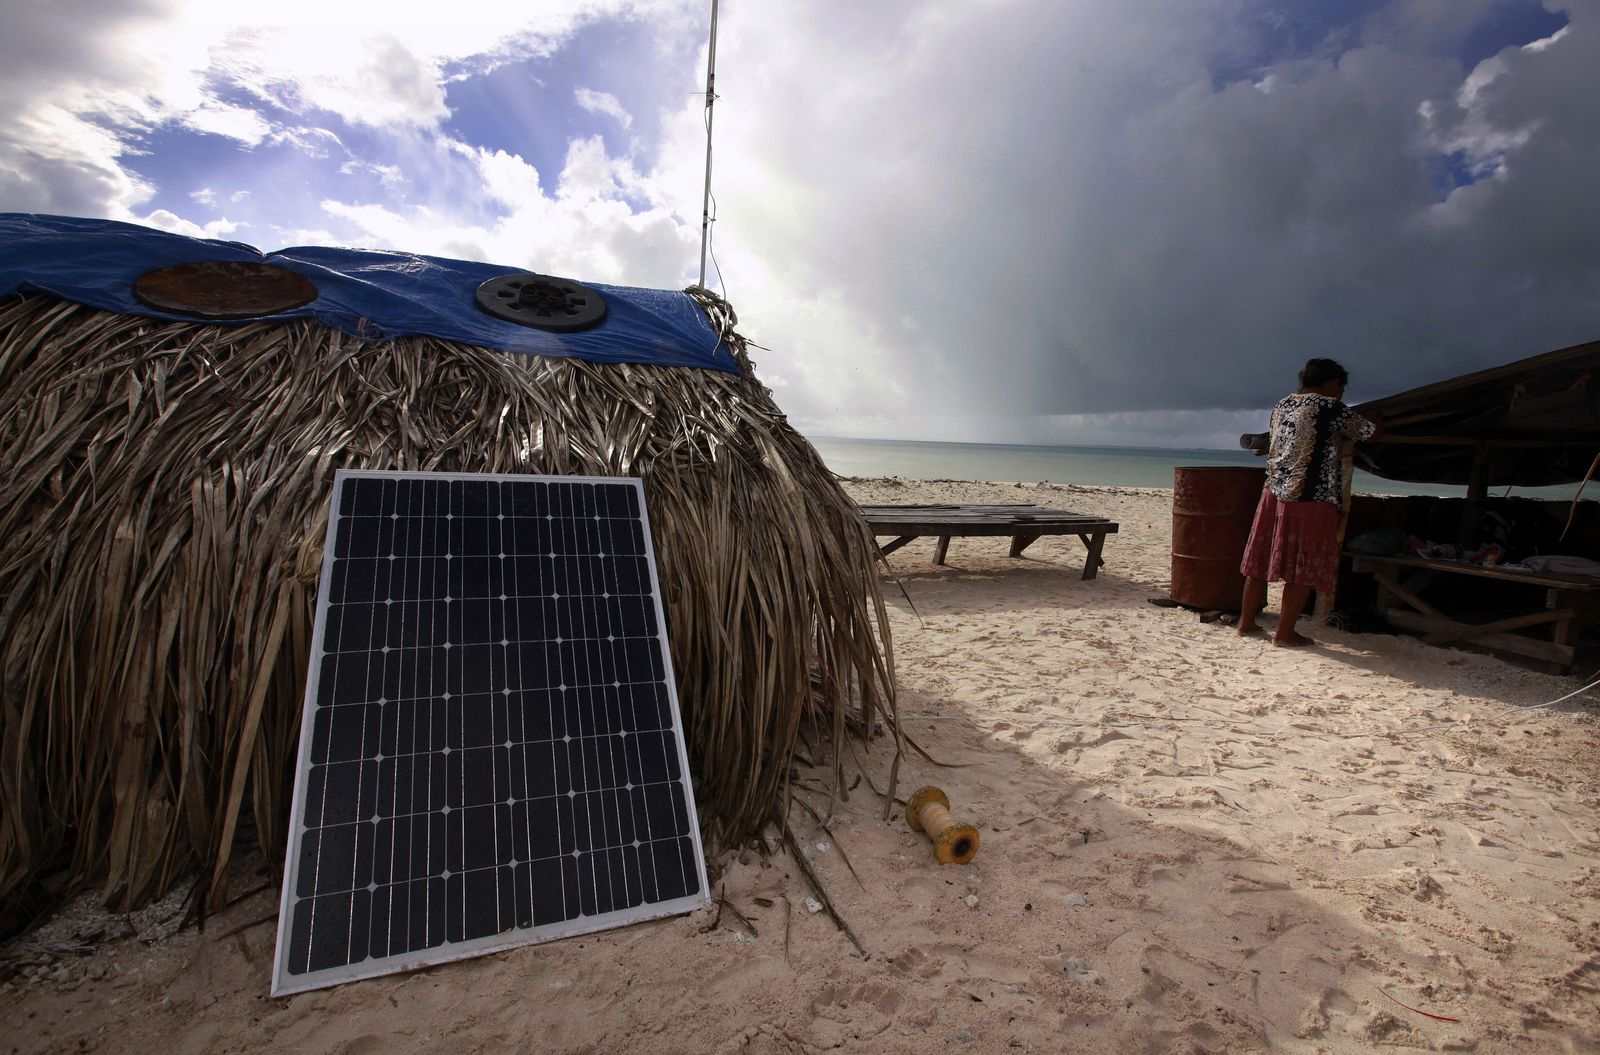 Binata Pinata checks the roof of her home as a storm approaches Bikeman islet, located off South Tarawa in the central Pacific island nation of Kiribati